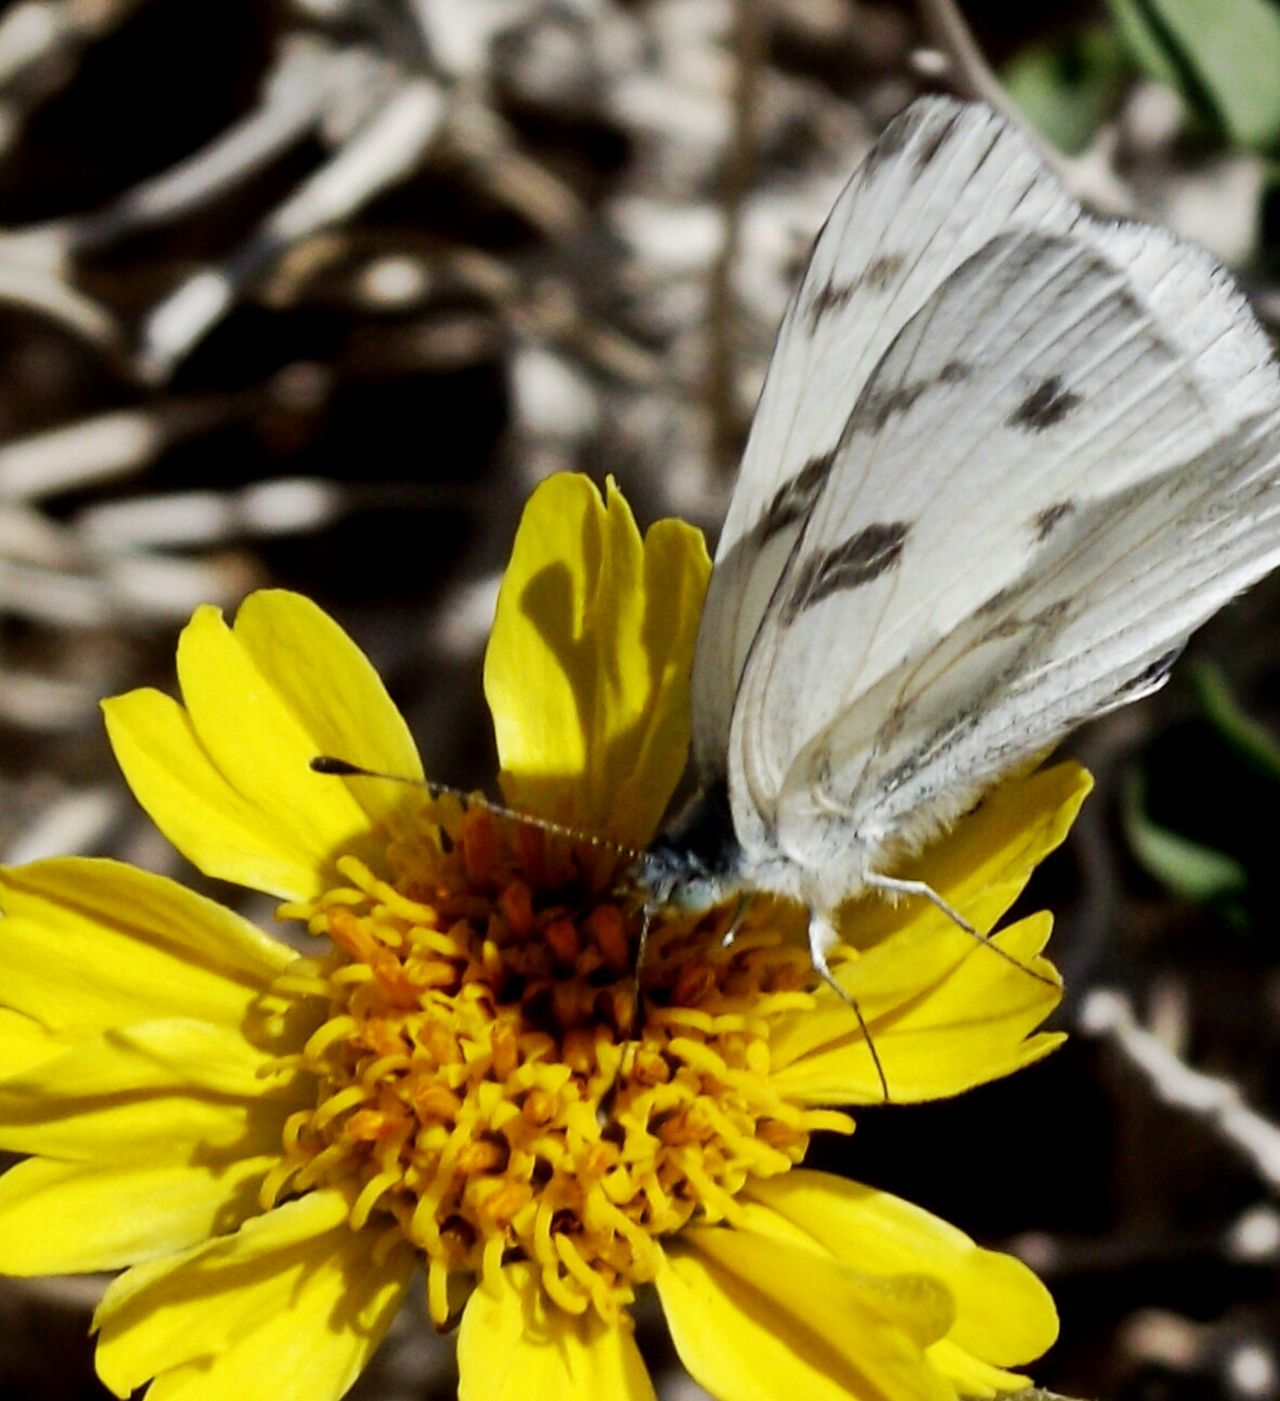 Pierisrapae Nature Plants And Flowers Pieris Rapae Insects  Flowers Intruder  Agricultural Pests Cabbage Butterfly